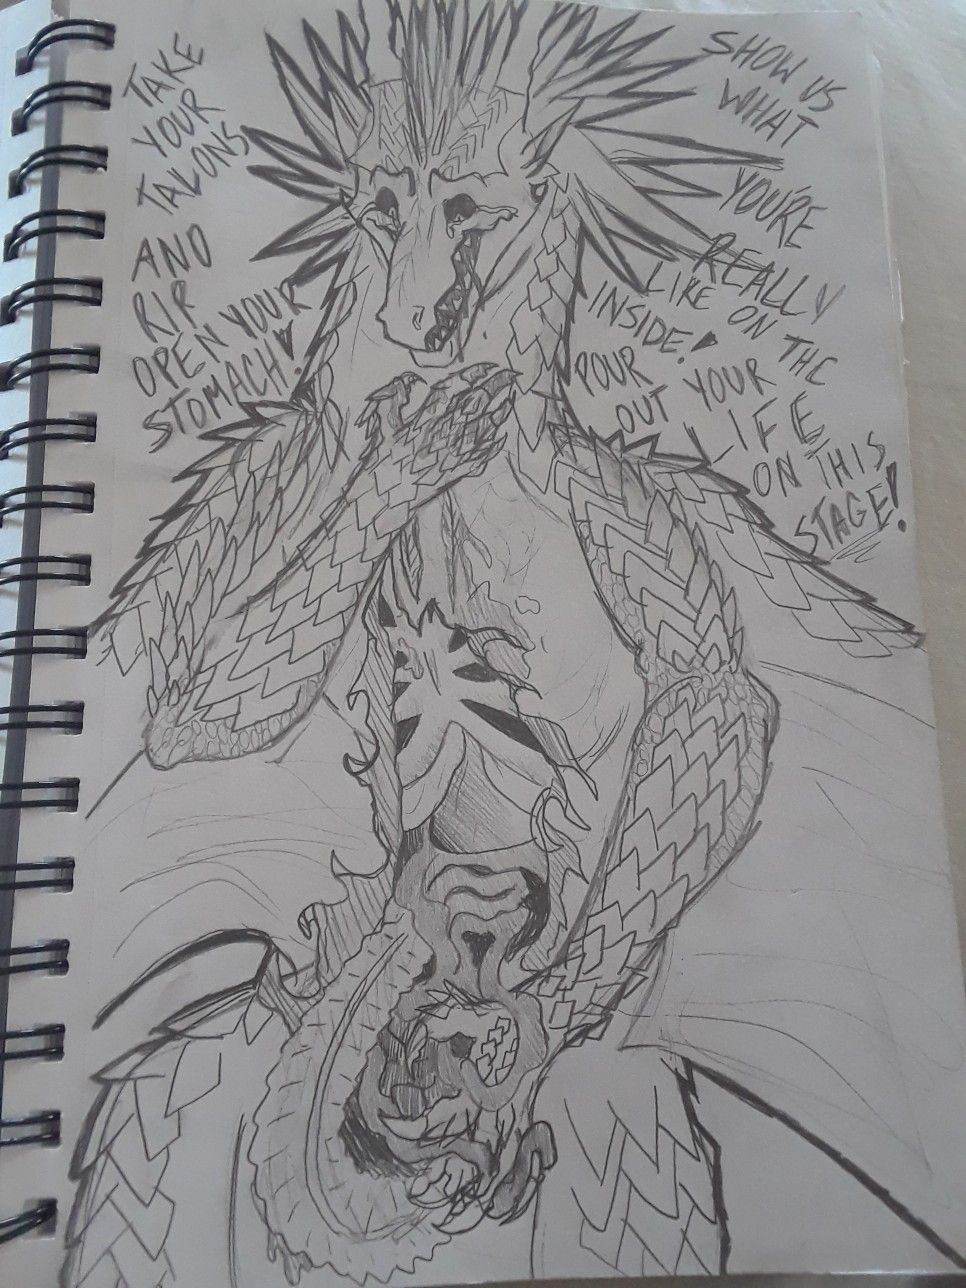 Prince Arctic Disembowelling Himself Wings Of Fire Darkstalker Legends Dragons Drawn By Babyechodragon Wings Of Fire Dragons Wings Of Fire Fire Art